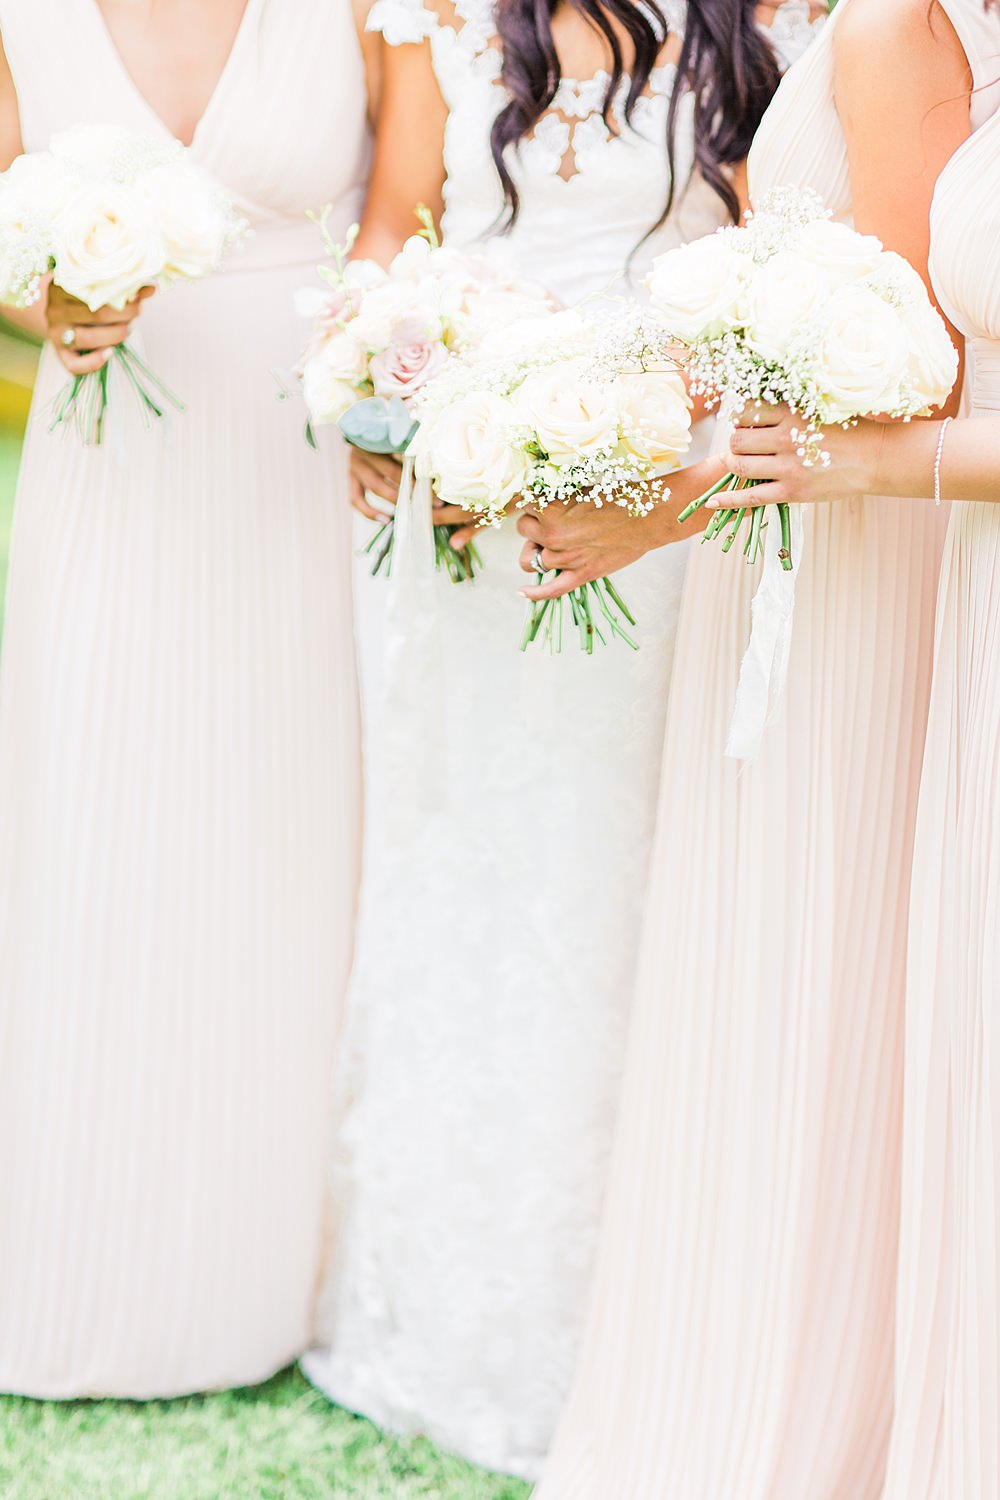 Bouquet Flowers Bride Bridal Bridesmaid Blush Cream Rose Pink Pastel Sheene Mill Wedding Terri & Lori Photography and Film Studio